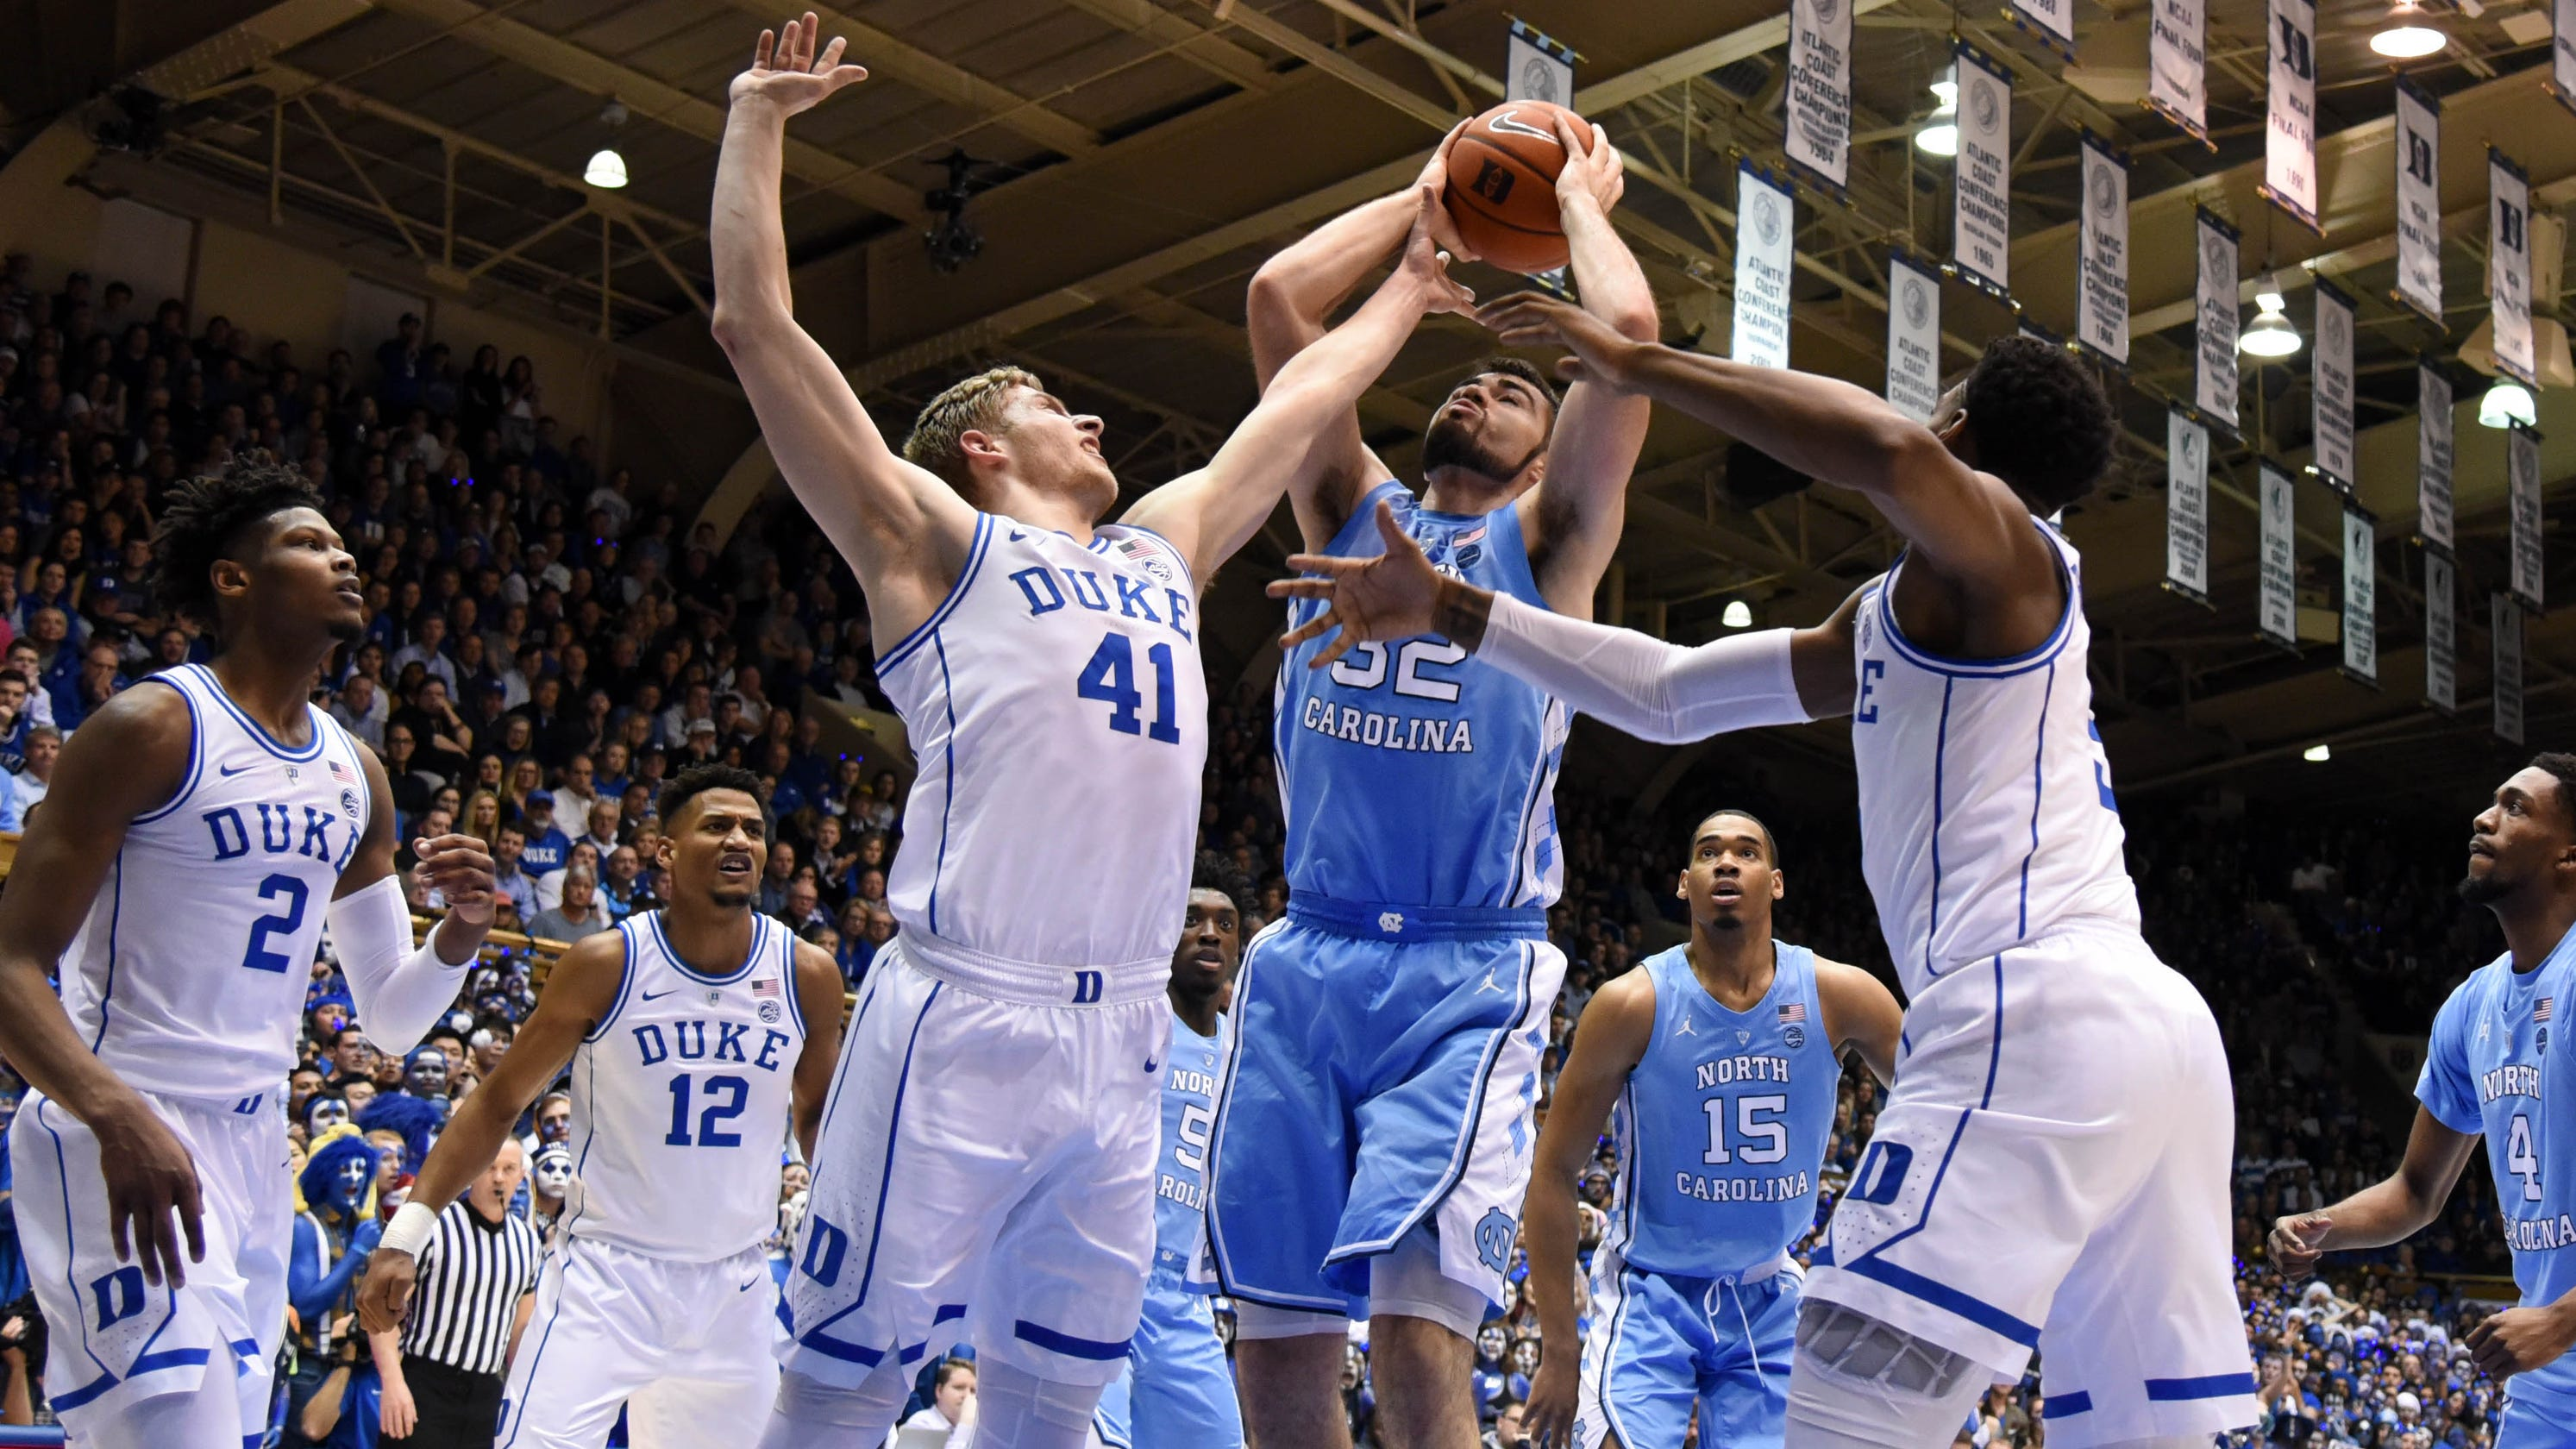 Ncaa Tournament Bracketology With March Madness Selection: March Madness NCAA Tournament Bracketology: ACC Has Three